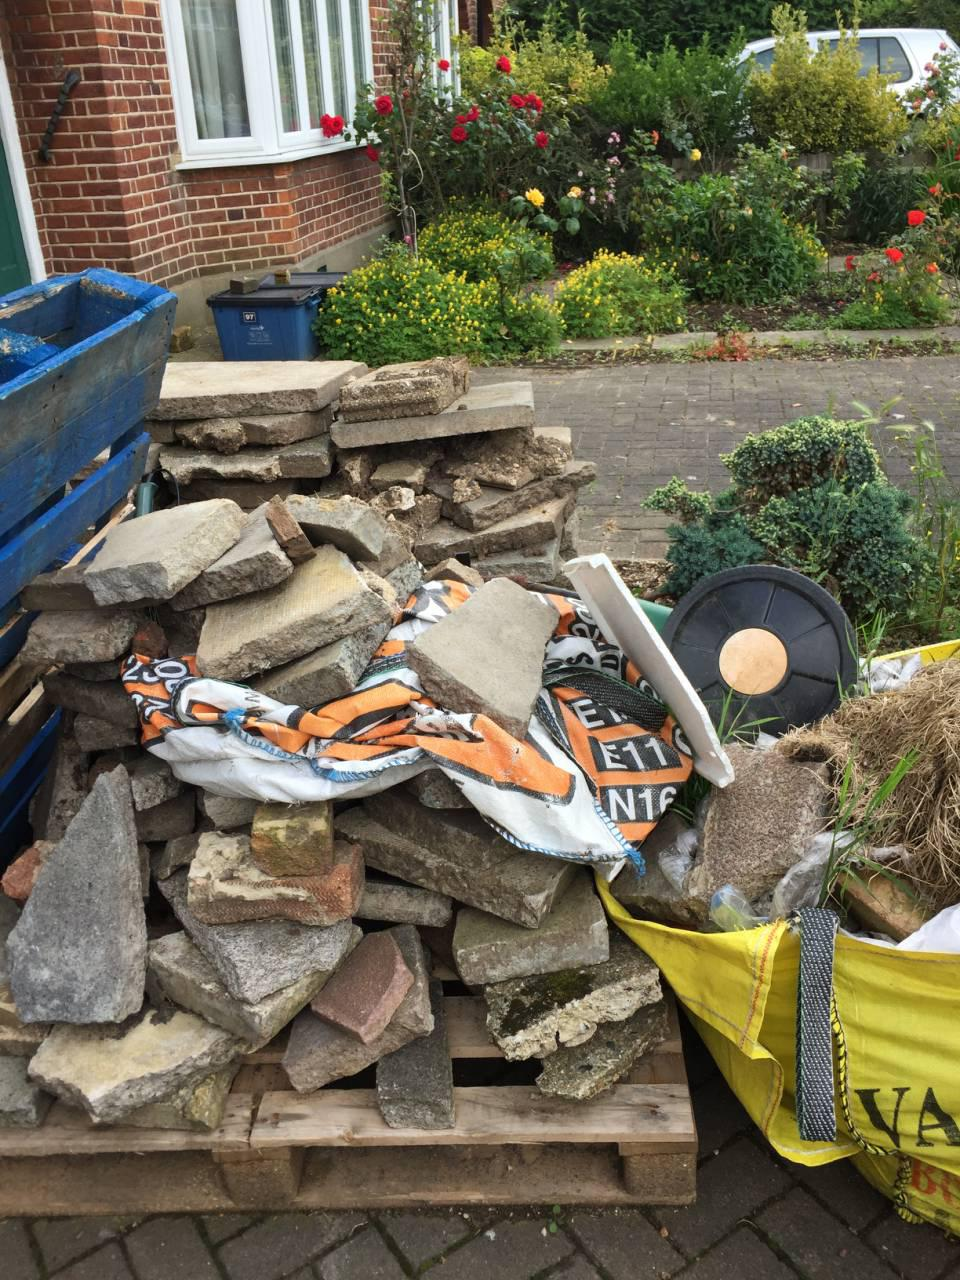 SW4 property clearance Clapham Common